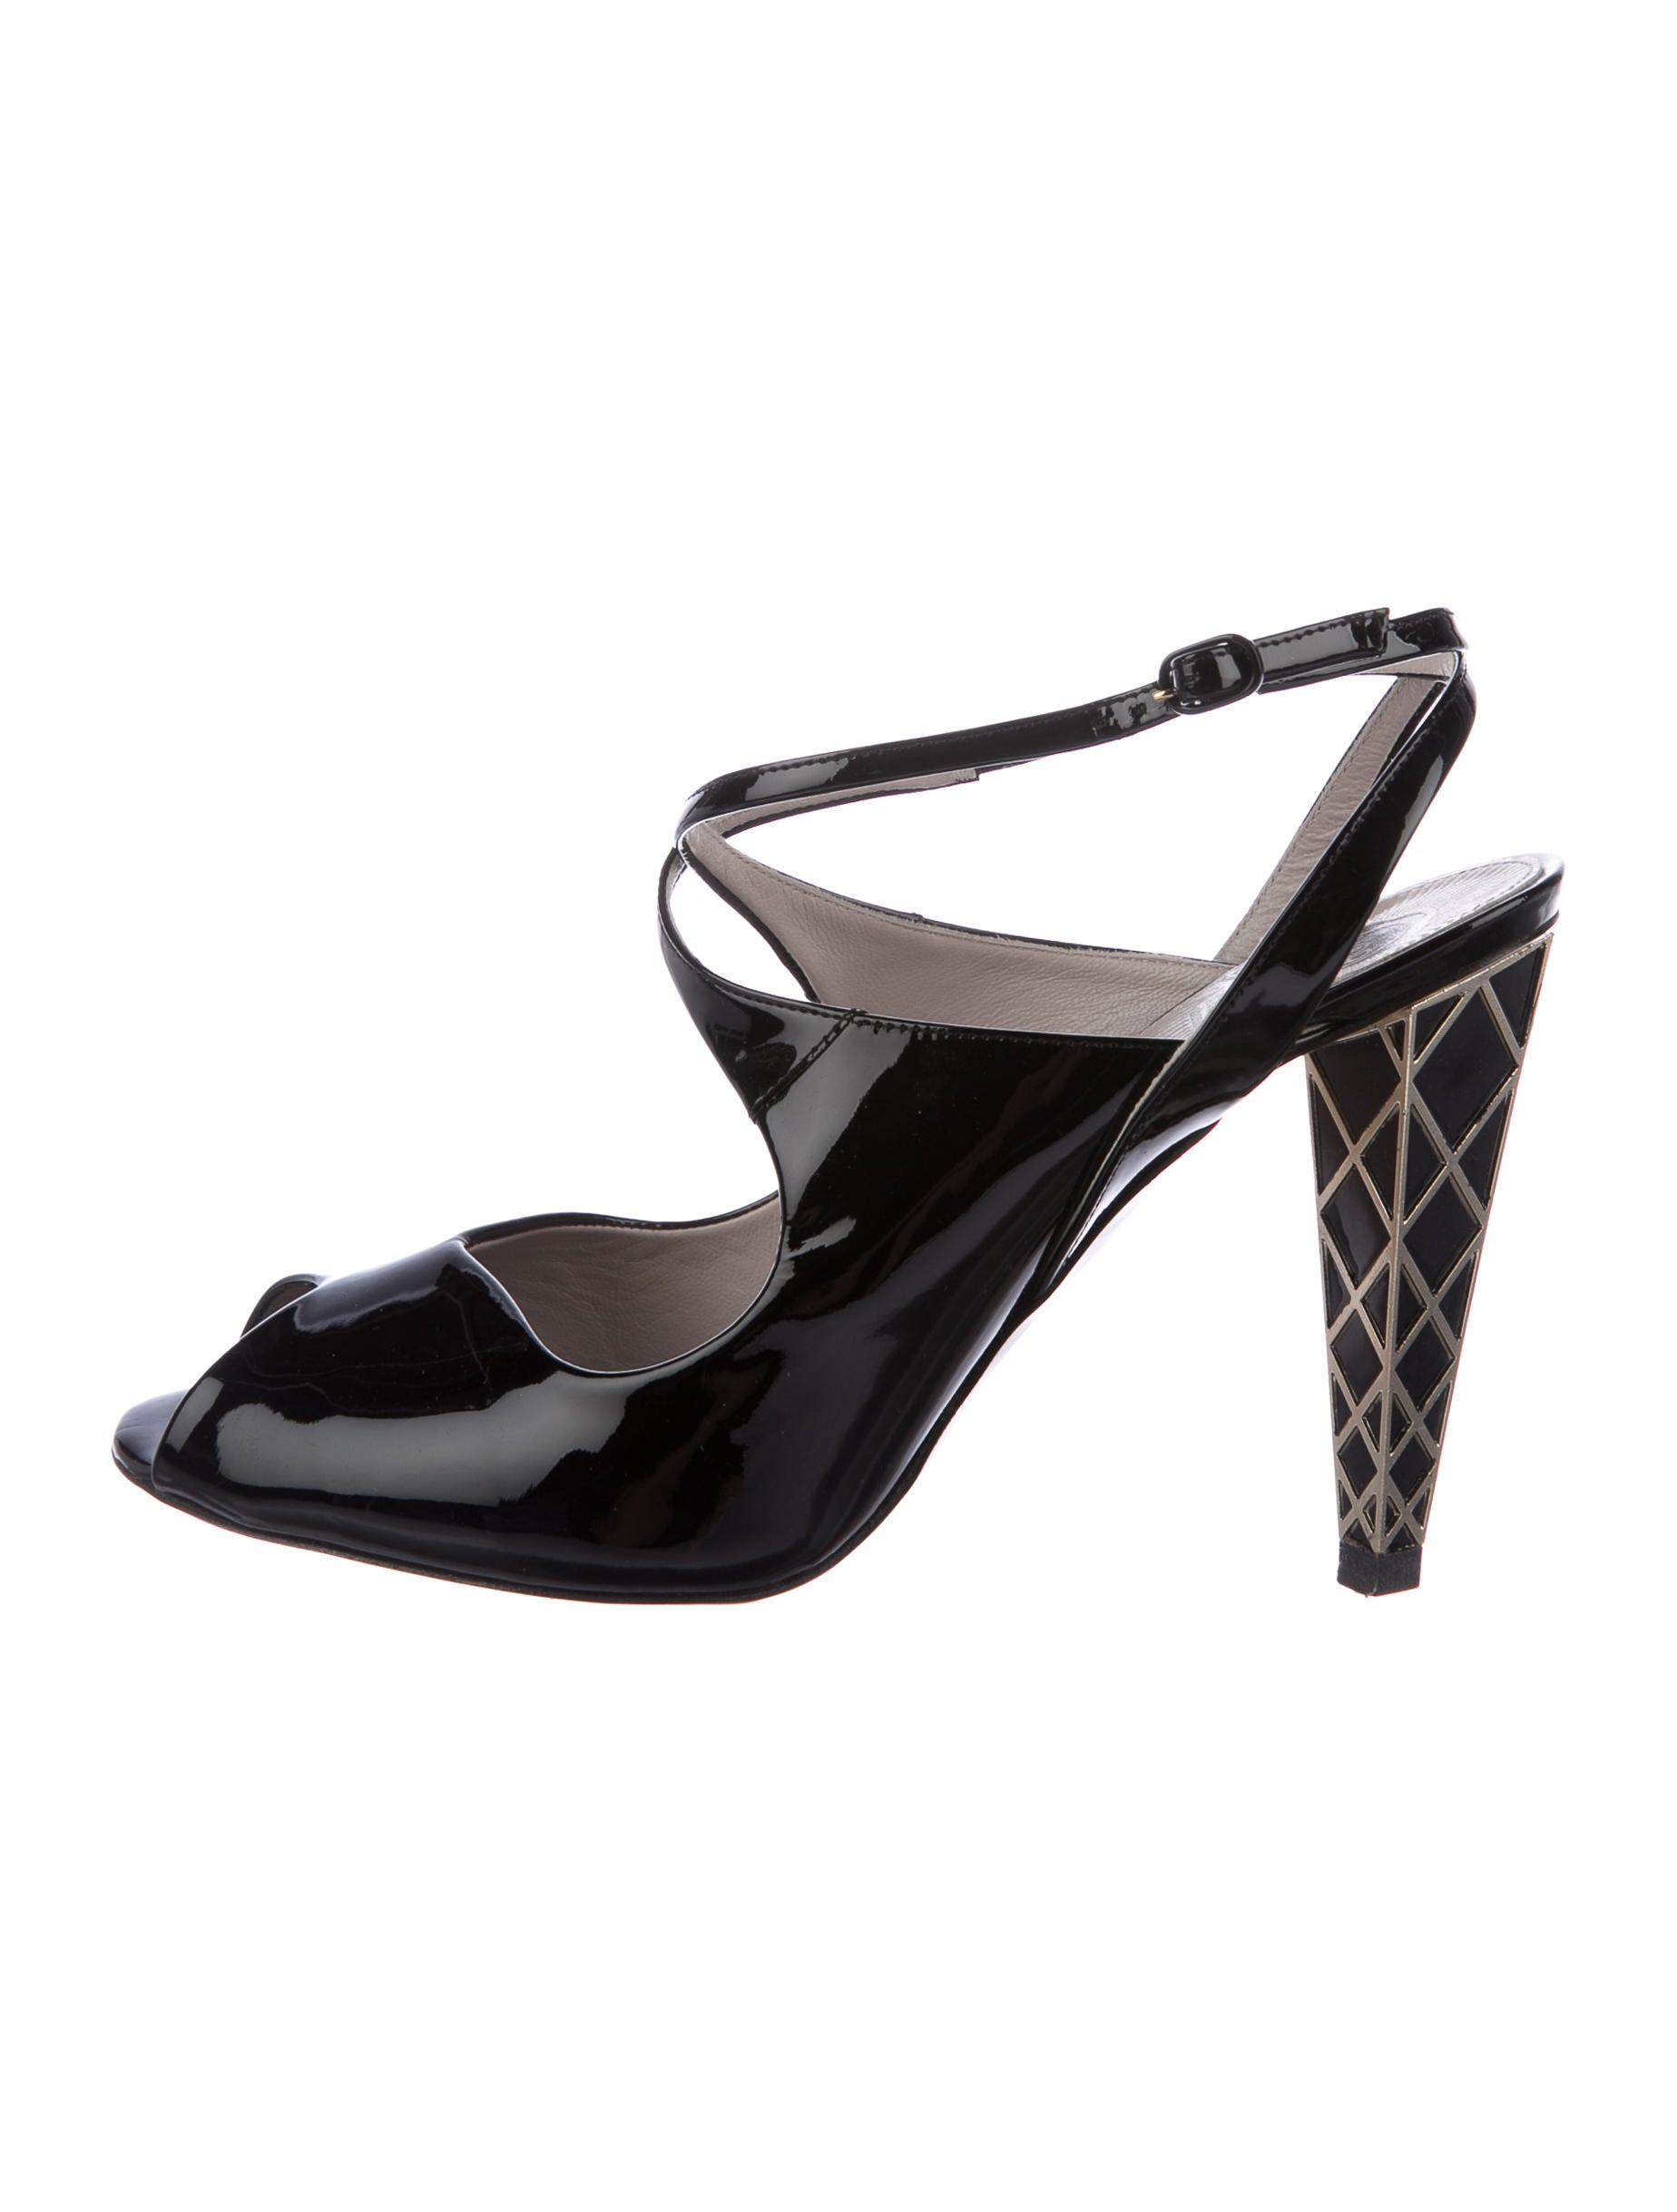 Viktor & Rolf Patent Leather Sandals RaekZR